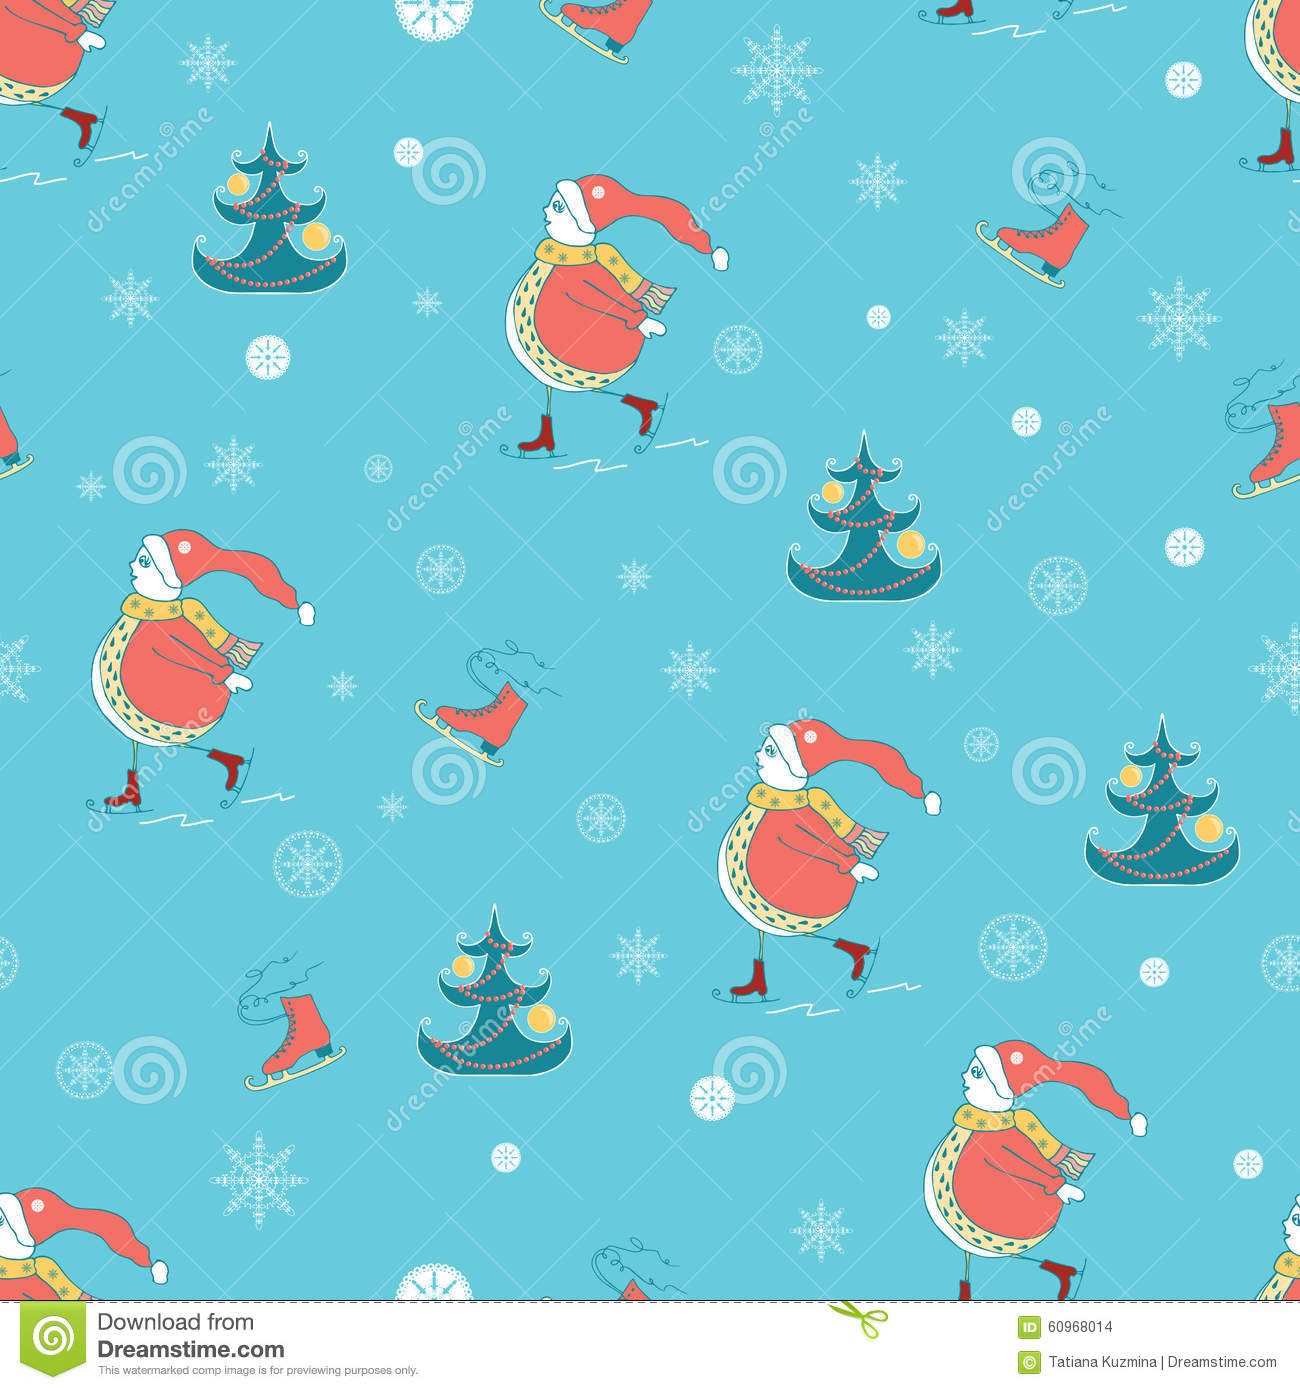 Christmas Wrapping Paper Background With Snowman, Christmas Tree ...